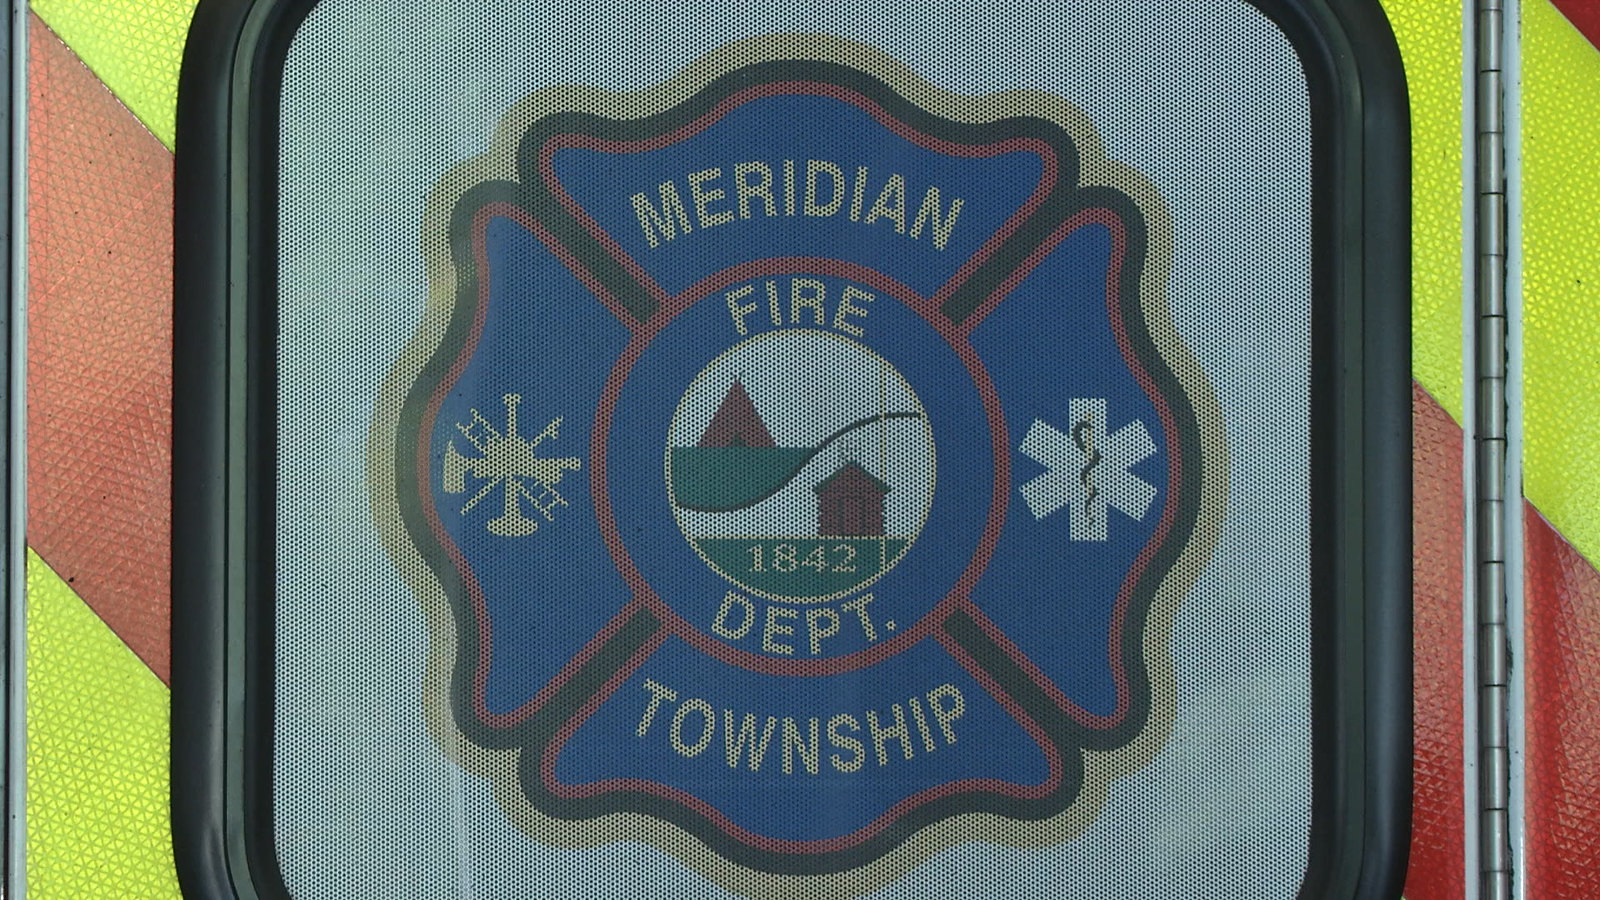 Meridian Township Fire Department Receives Fire Prevention Grant